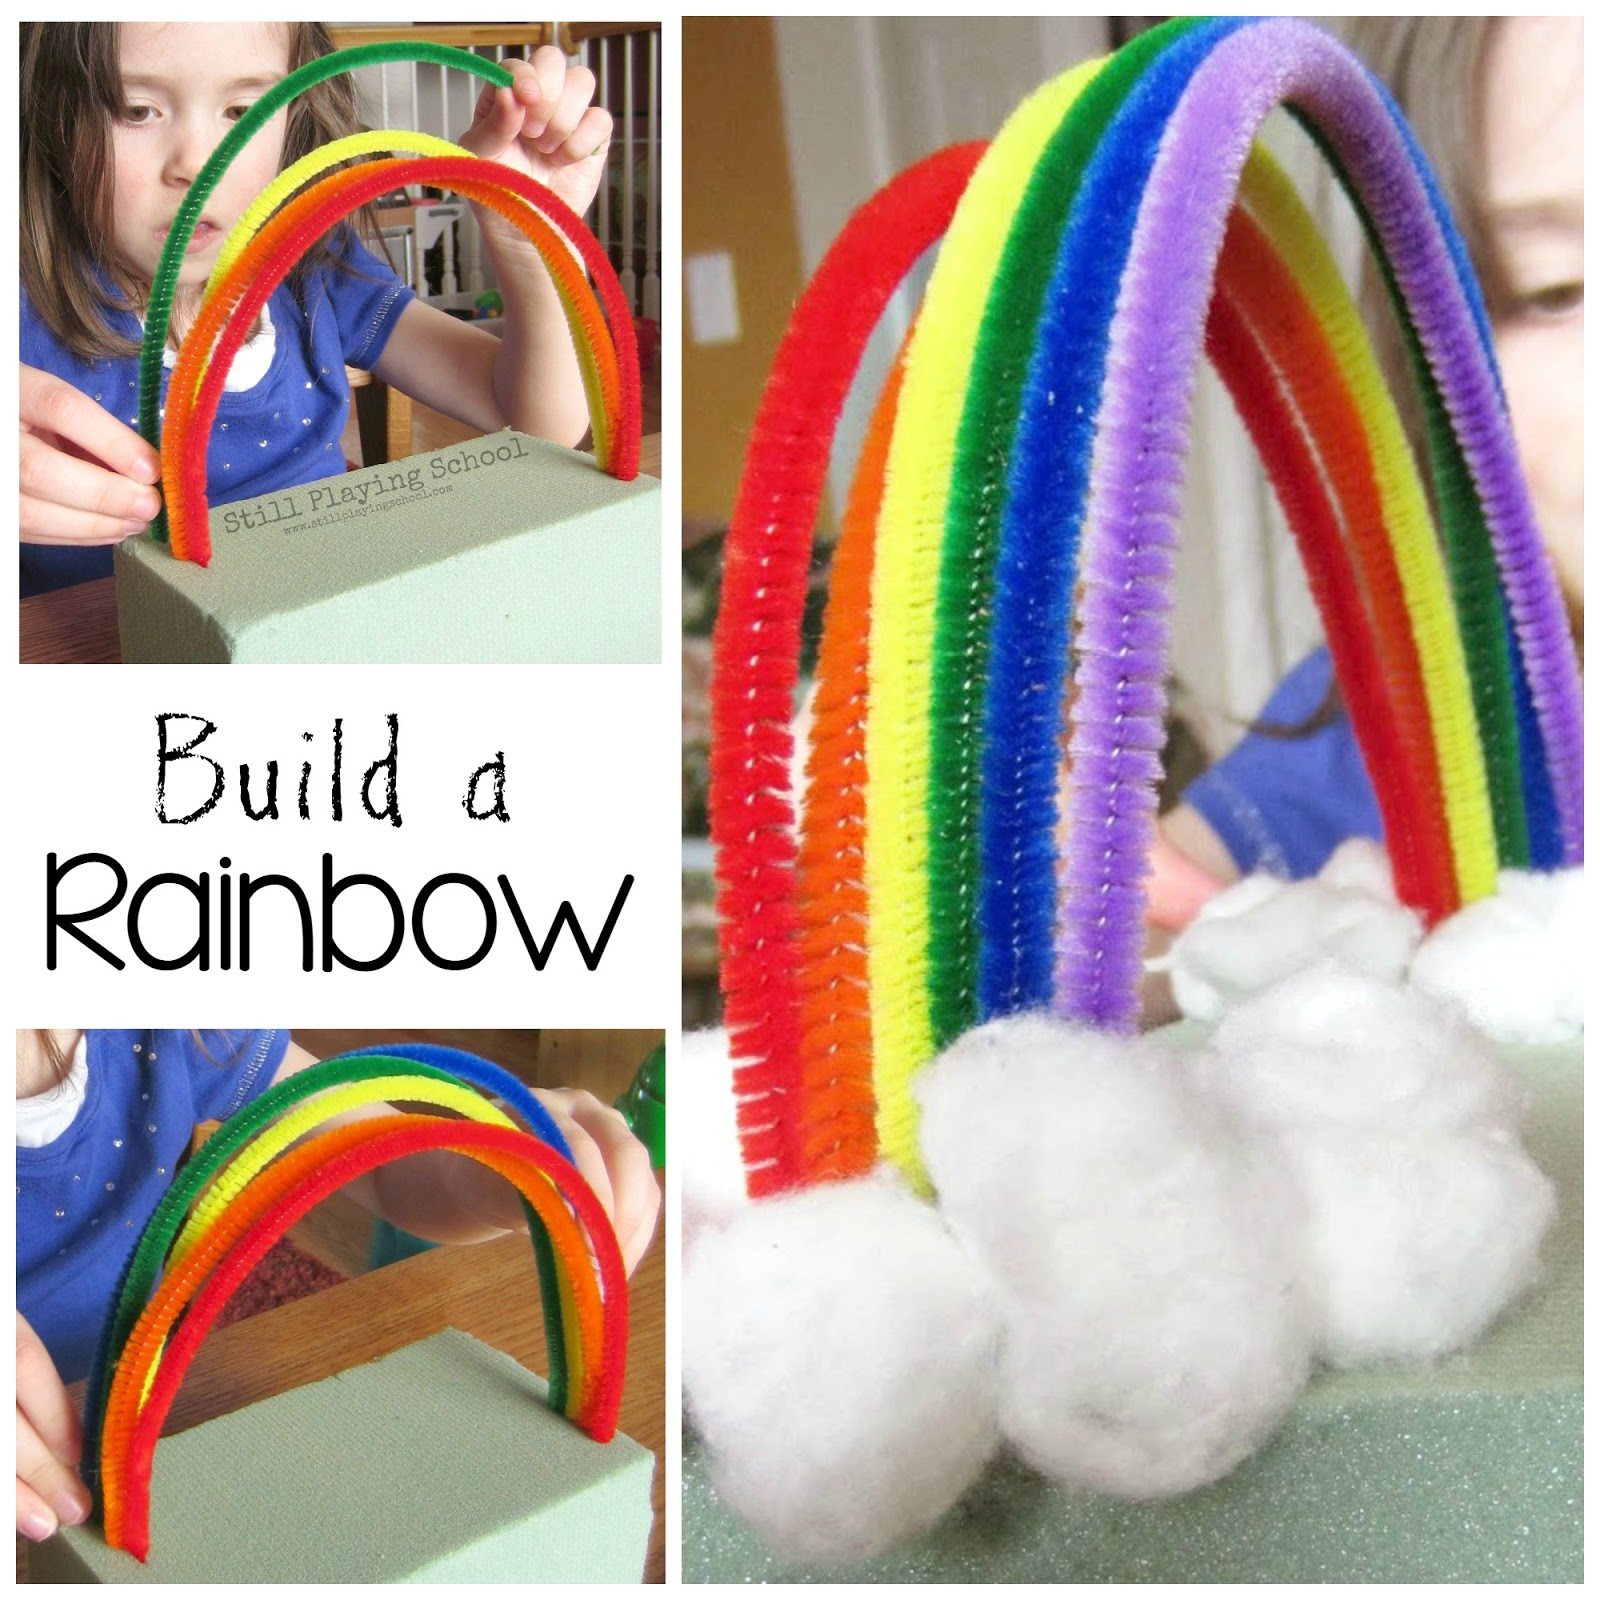 sc 1 st  Still Playing School & Pipe Cleaner Rainbow | Still Playing School